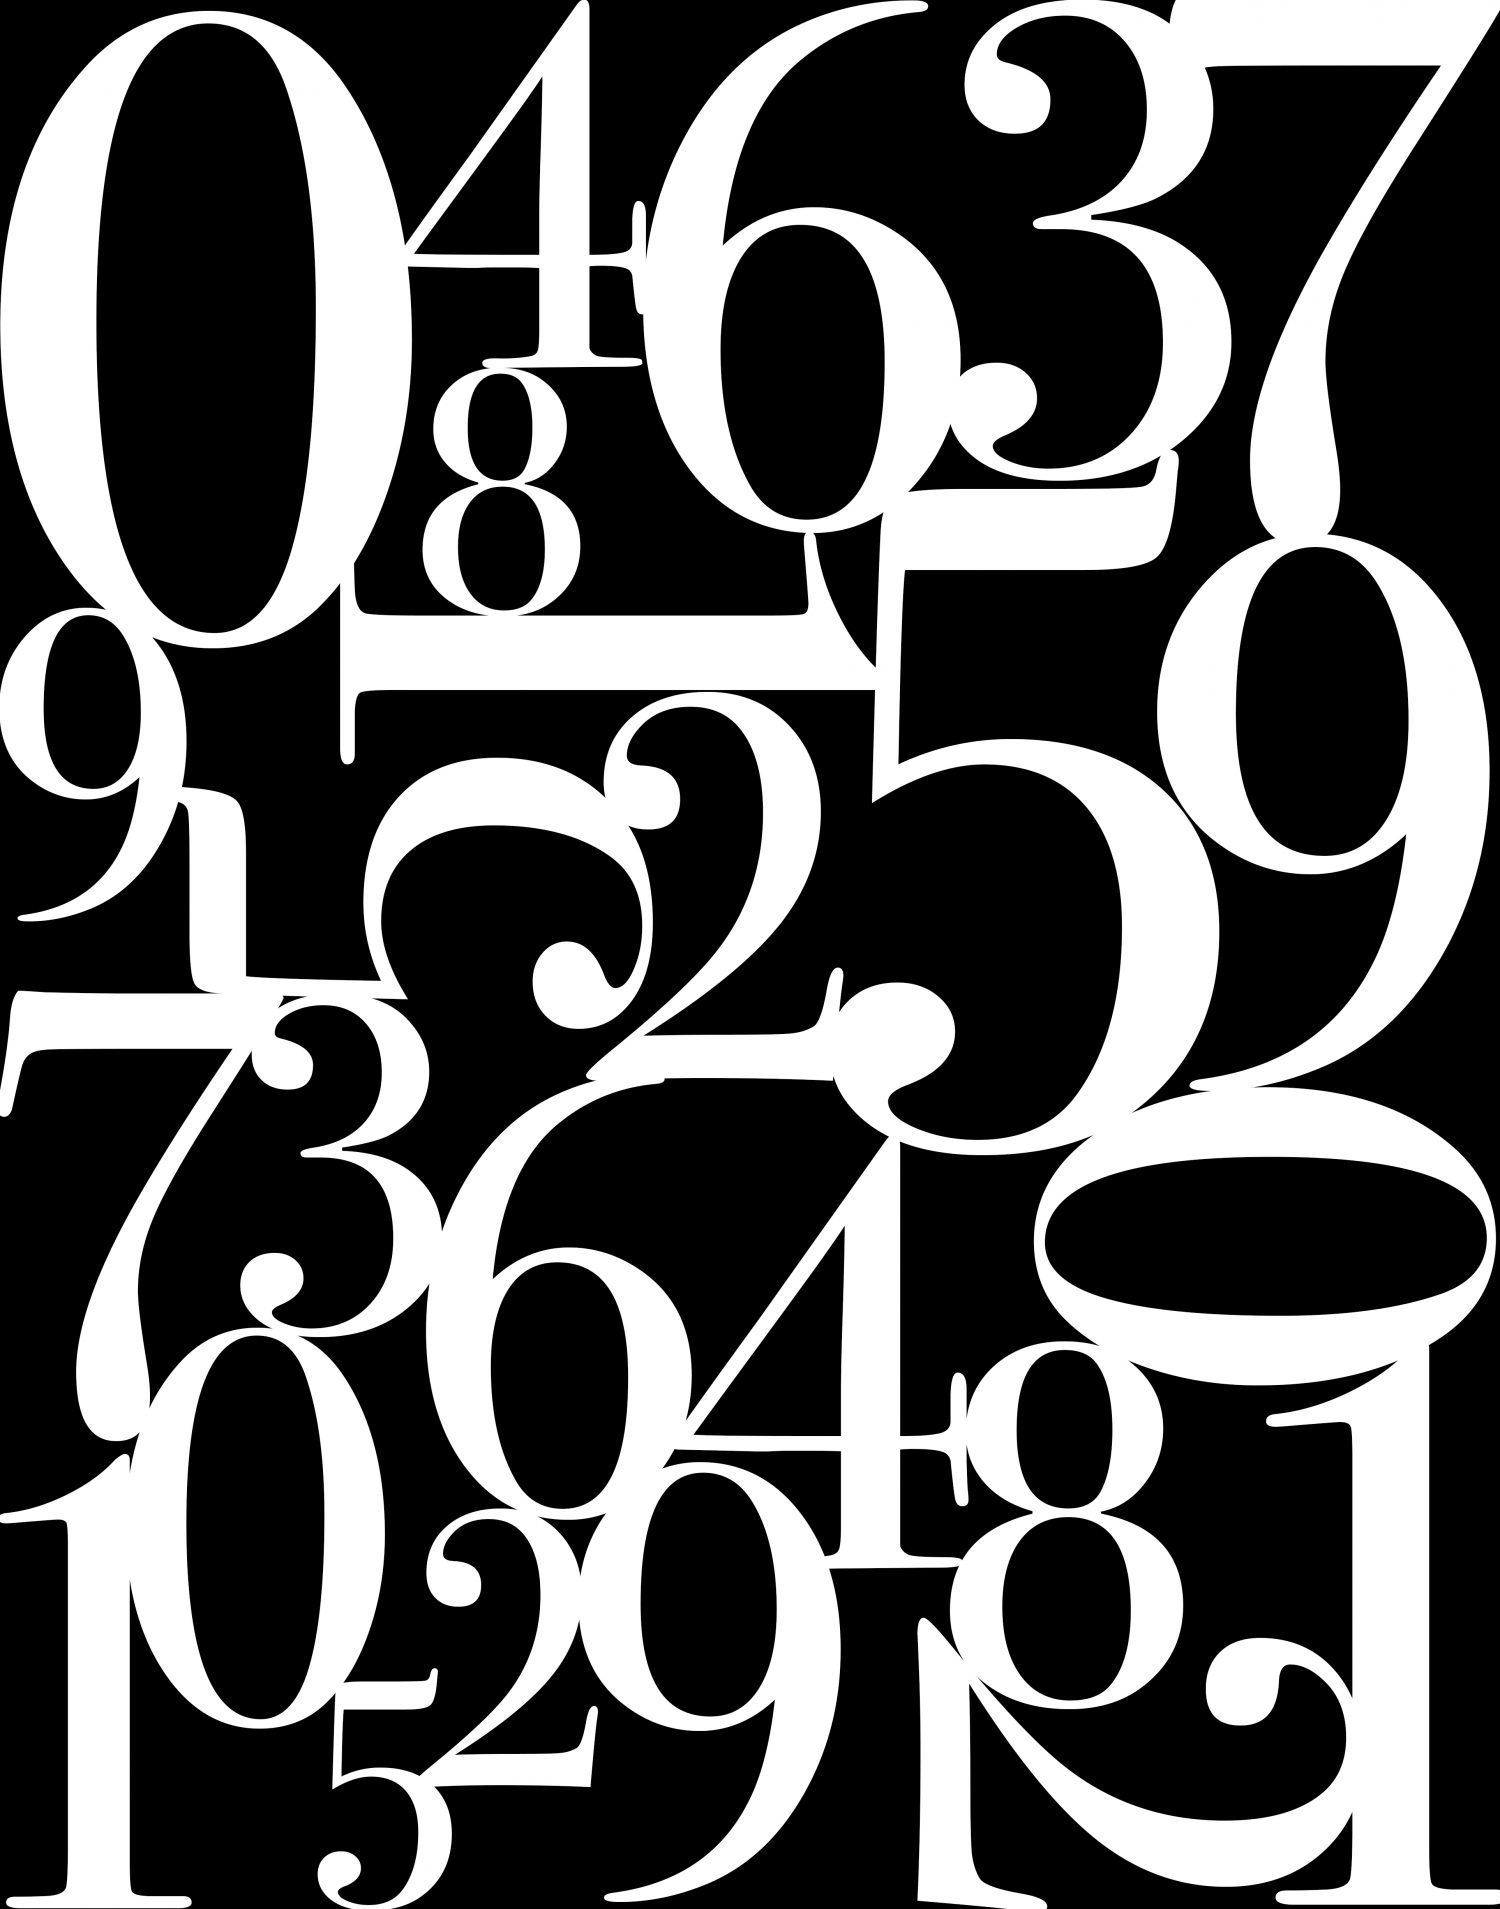 Number typography printables free printables included for Photo collage number templates